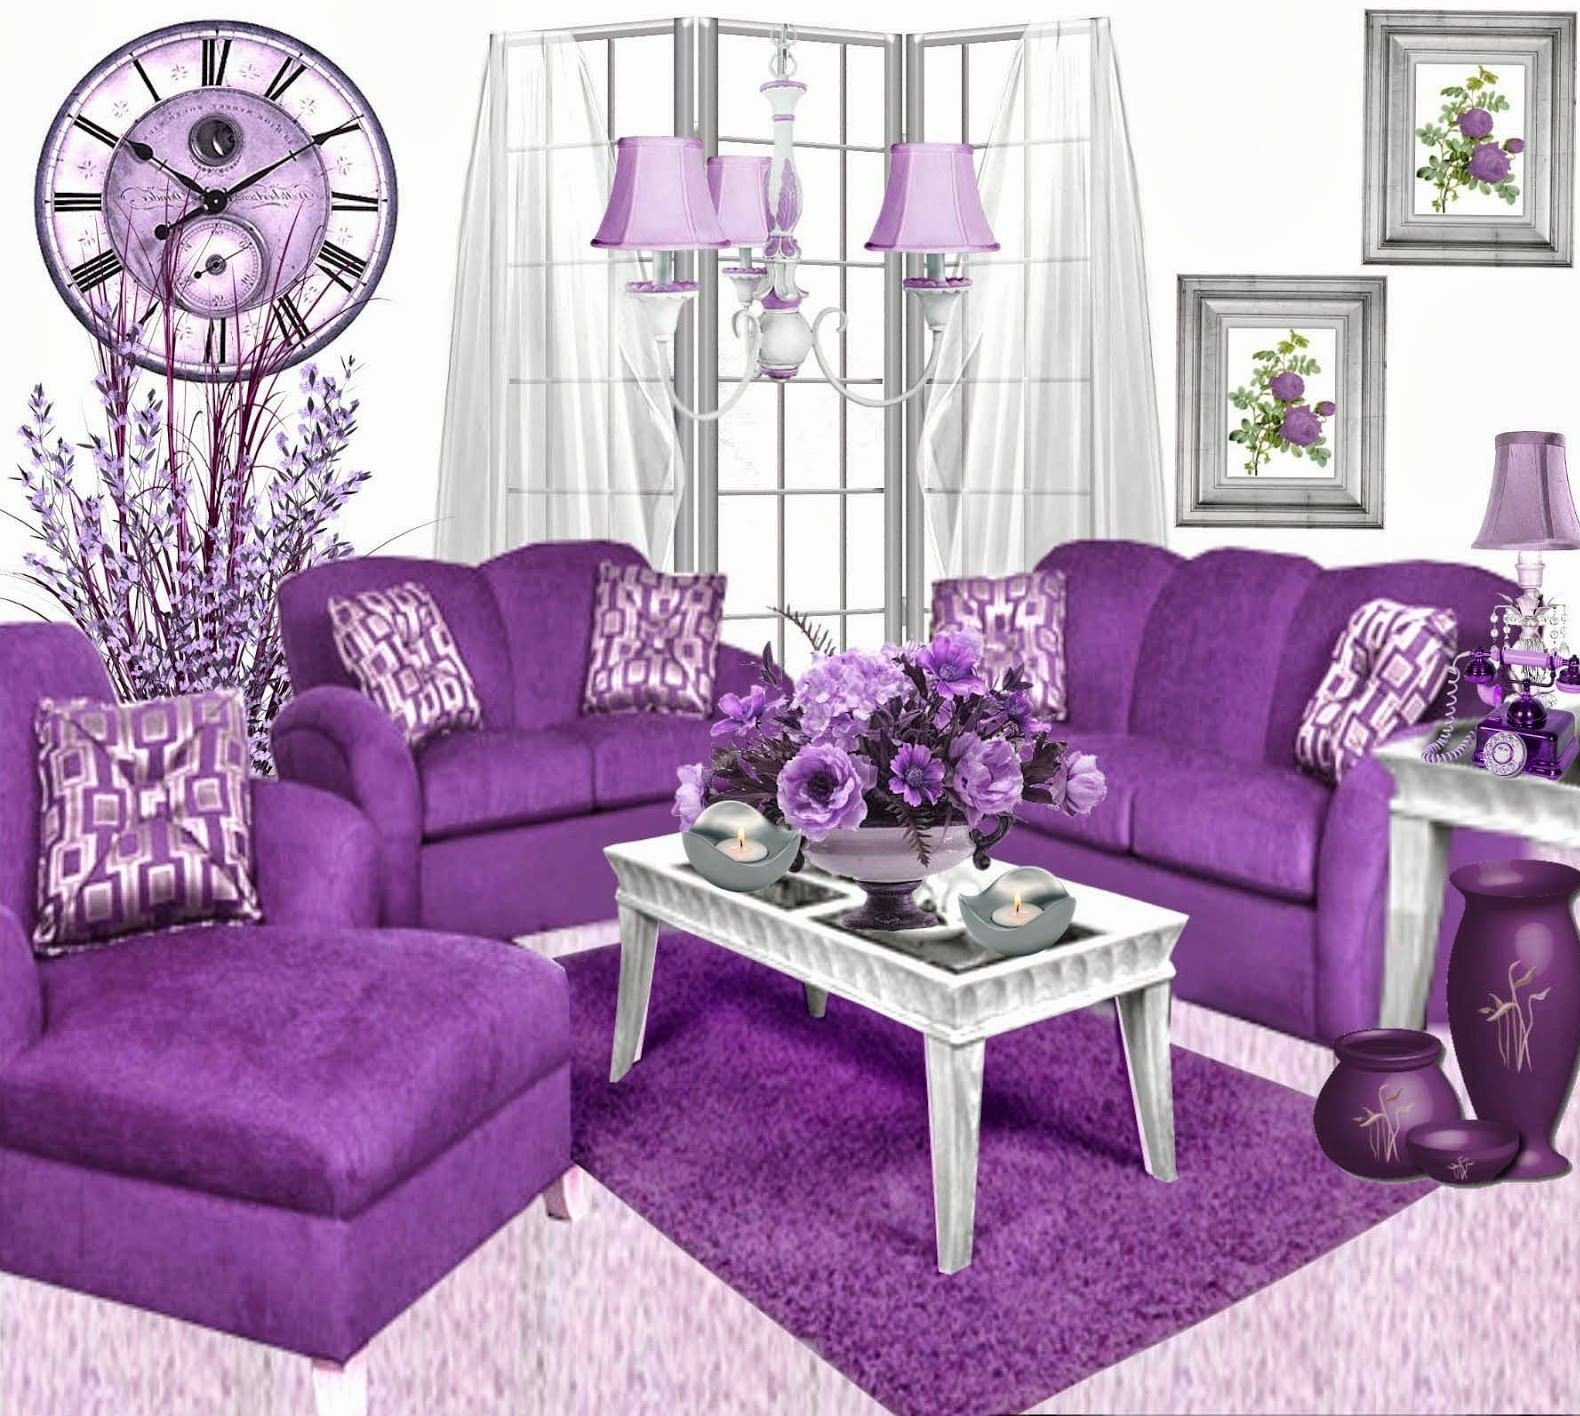 Purple Decor for Living Room Tips On Decorating Purple Living Room Decorating Room